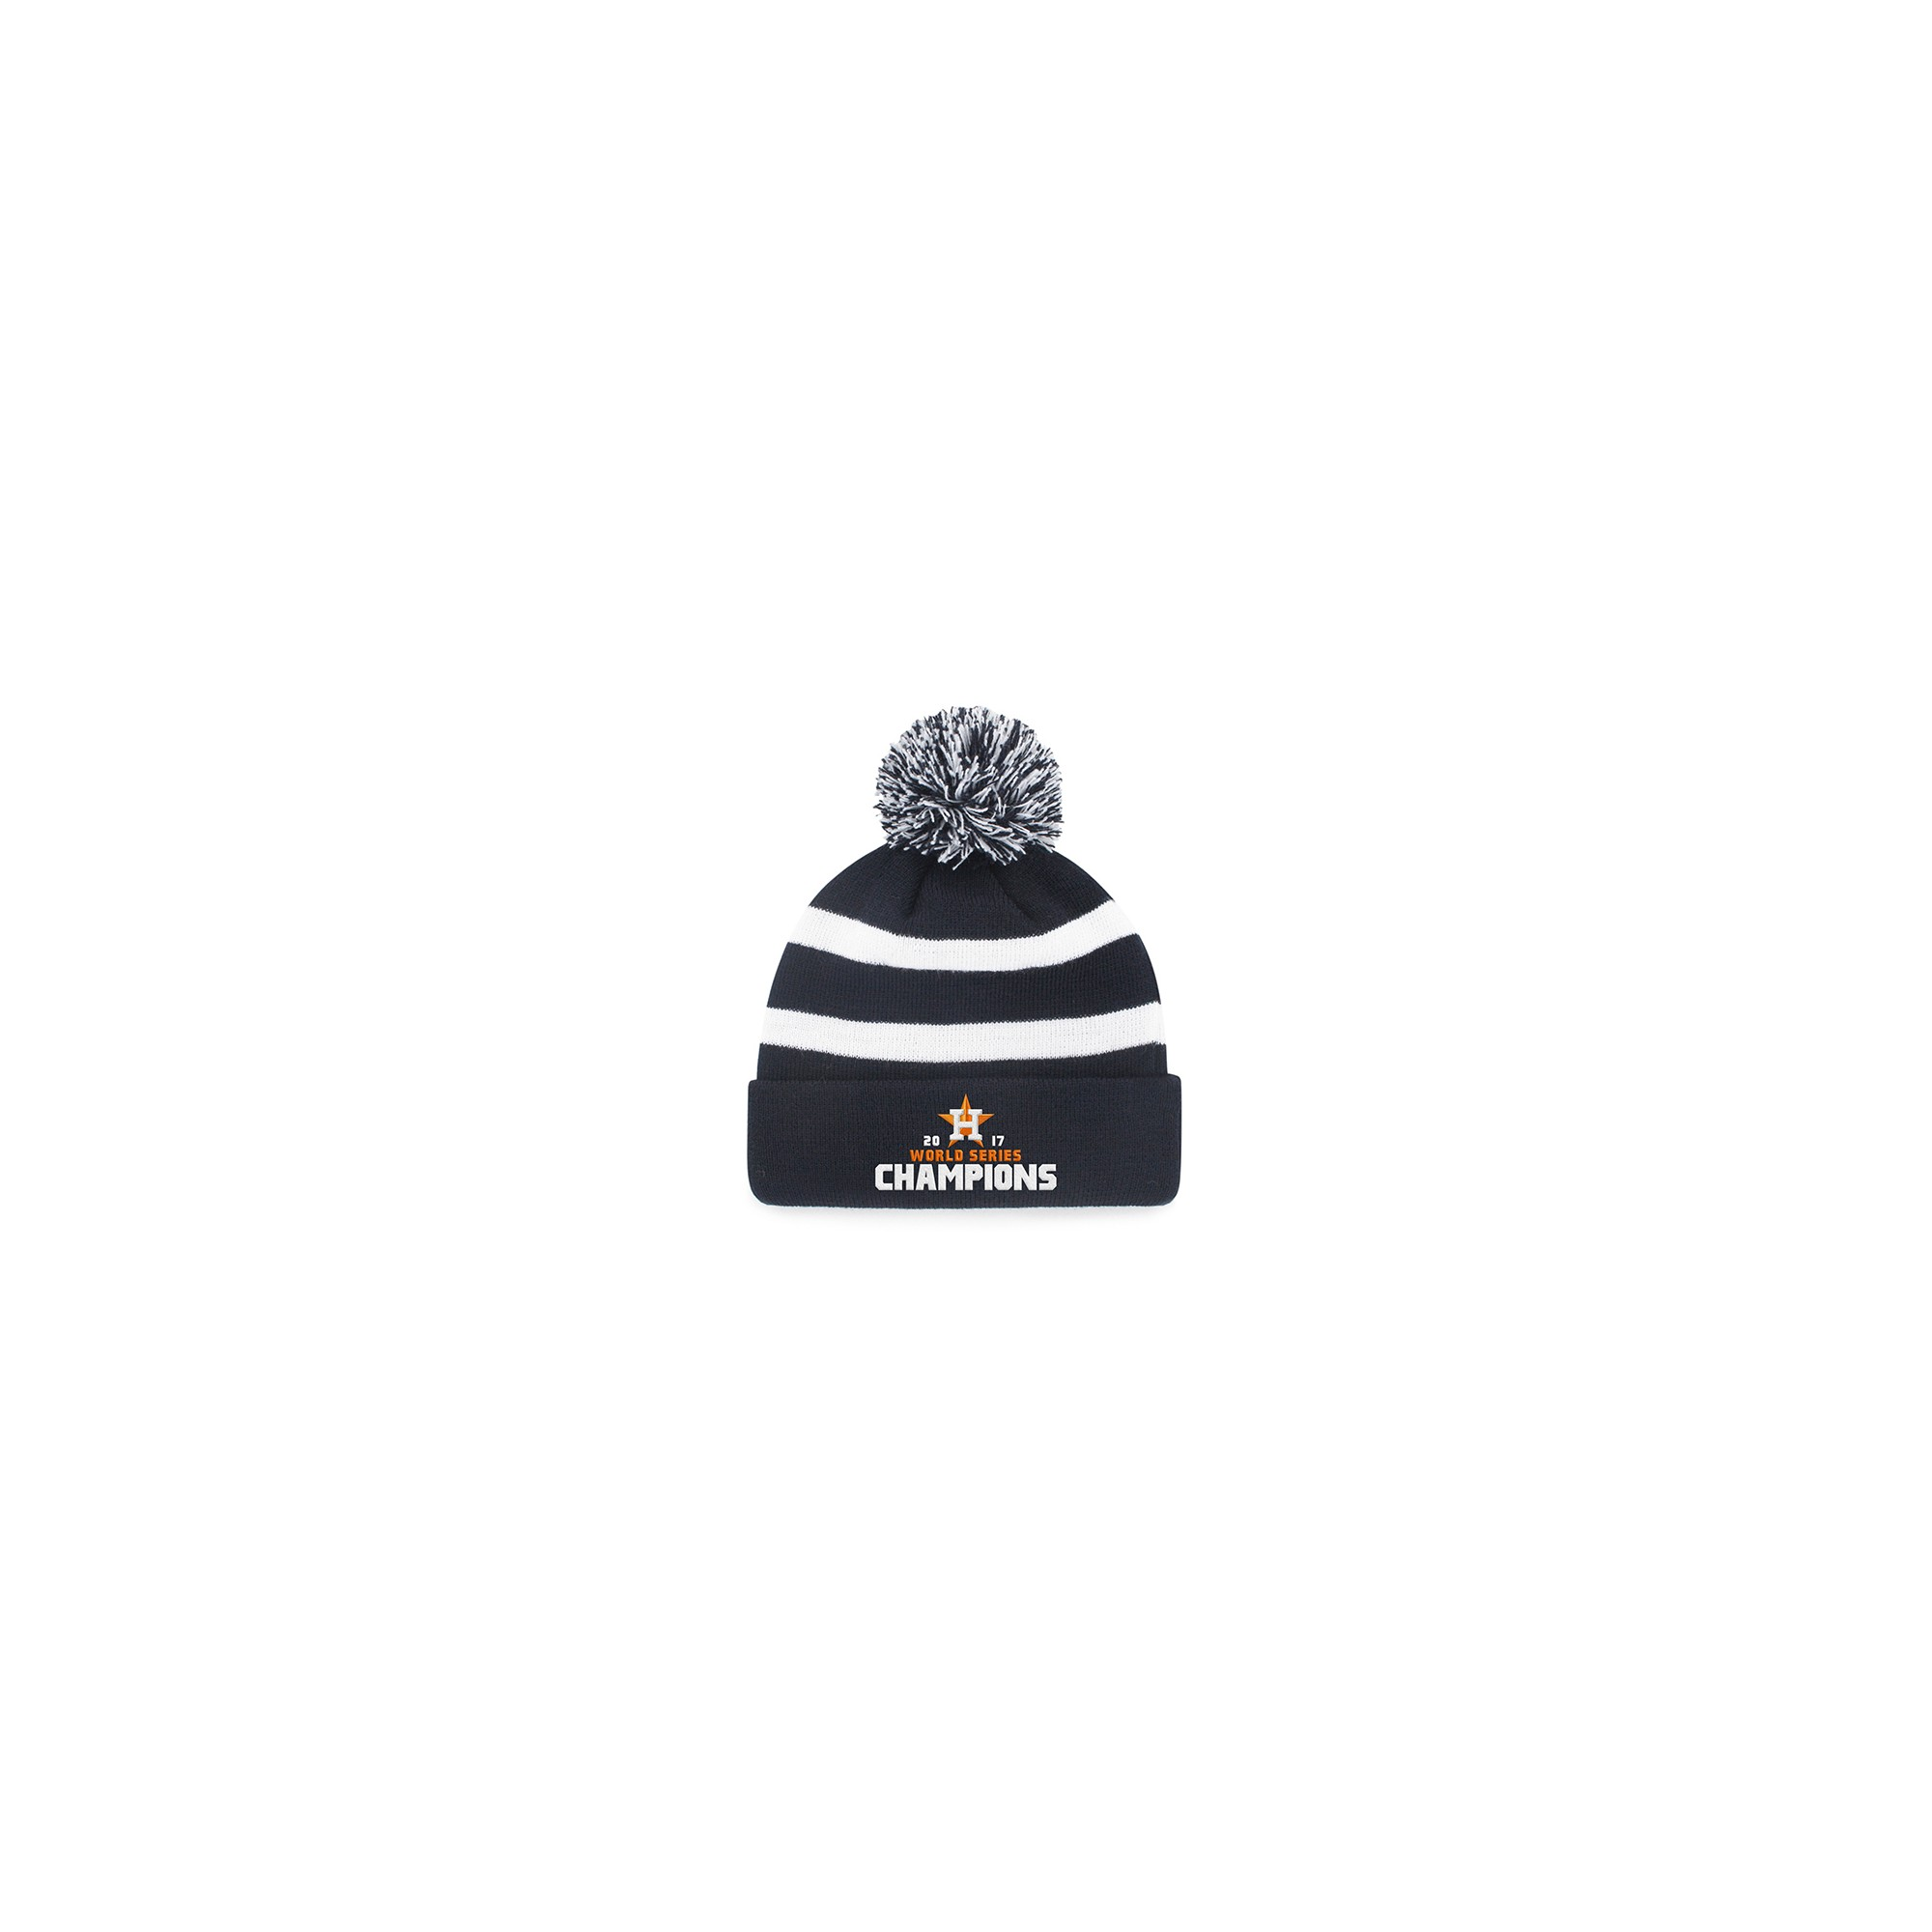 b8cf3da369a Houston Astros Fan Favorite World Series Champions Breakaway Knit Beanie  with Pom